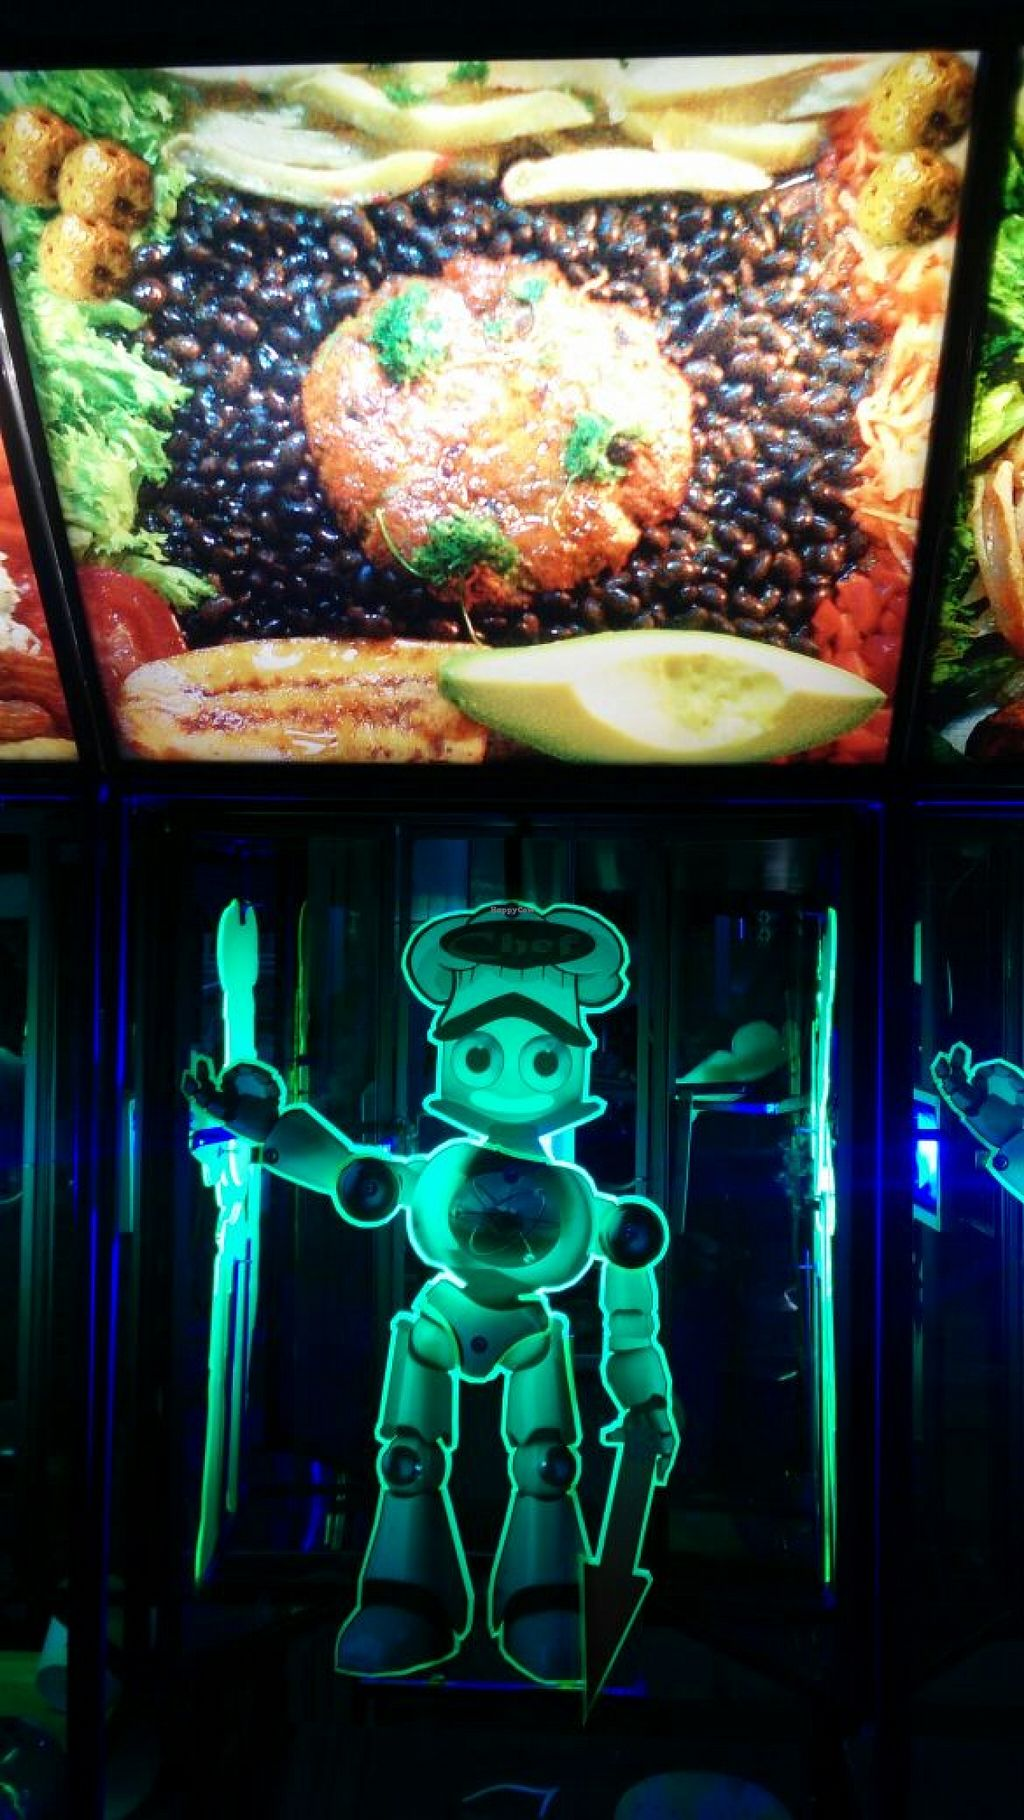 """Photo of CLOSED: Los Robots  by <a href=""""/members/profile/LosRobots"""">LosRobots</a> <br/>Vegan Restaurant attended by Robots <br/> June 15, 2016  - <a href='/contact/abuse/image/75123/154090'>Report</a>"""